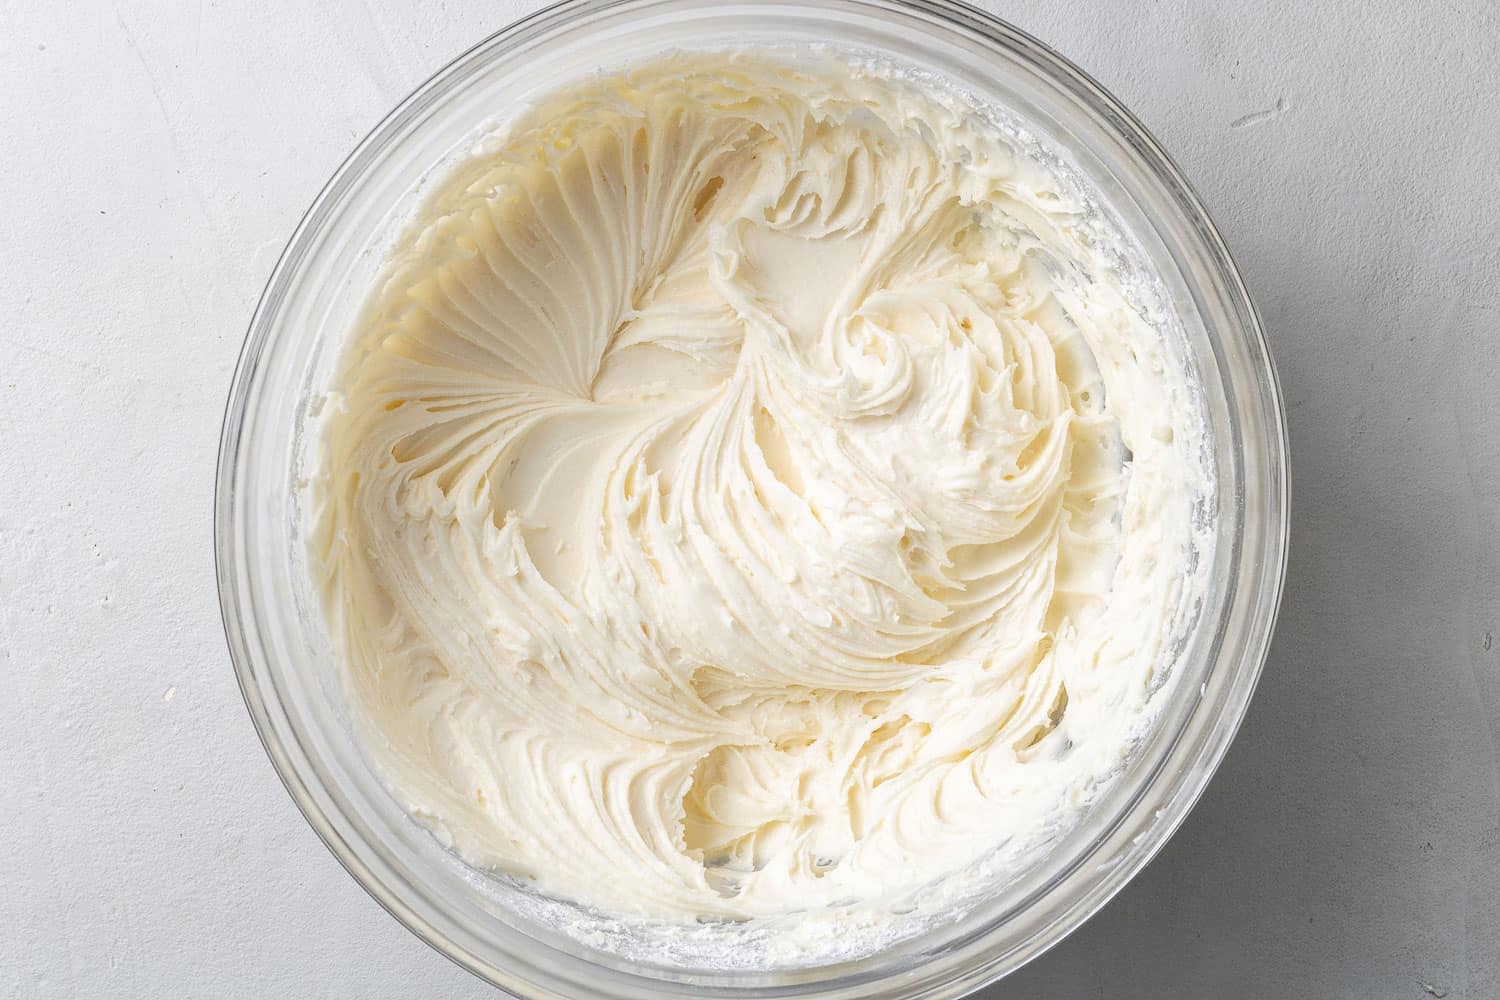 Cream cheese frosting in a clear glass mixing bowl.